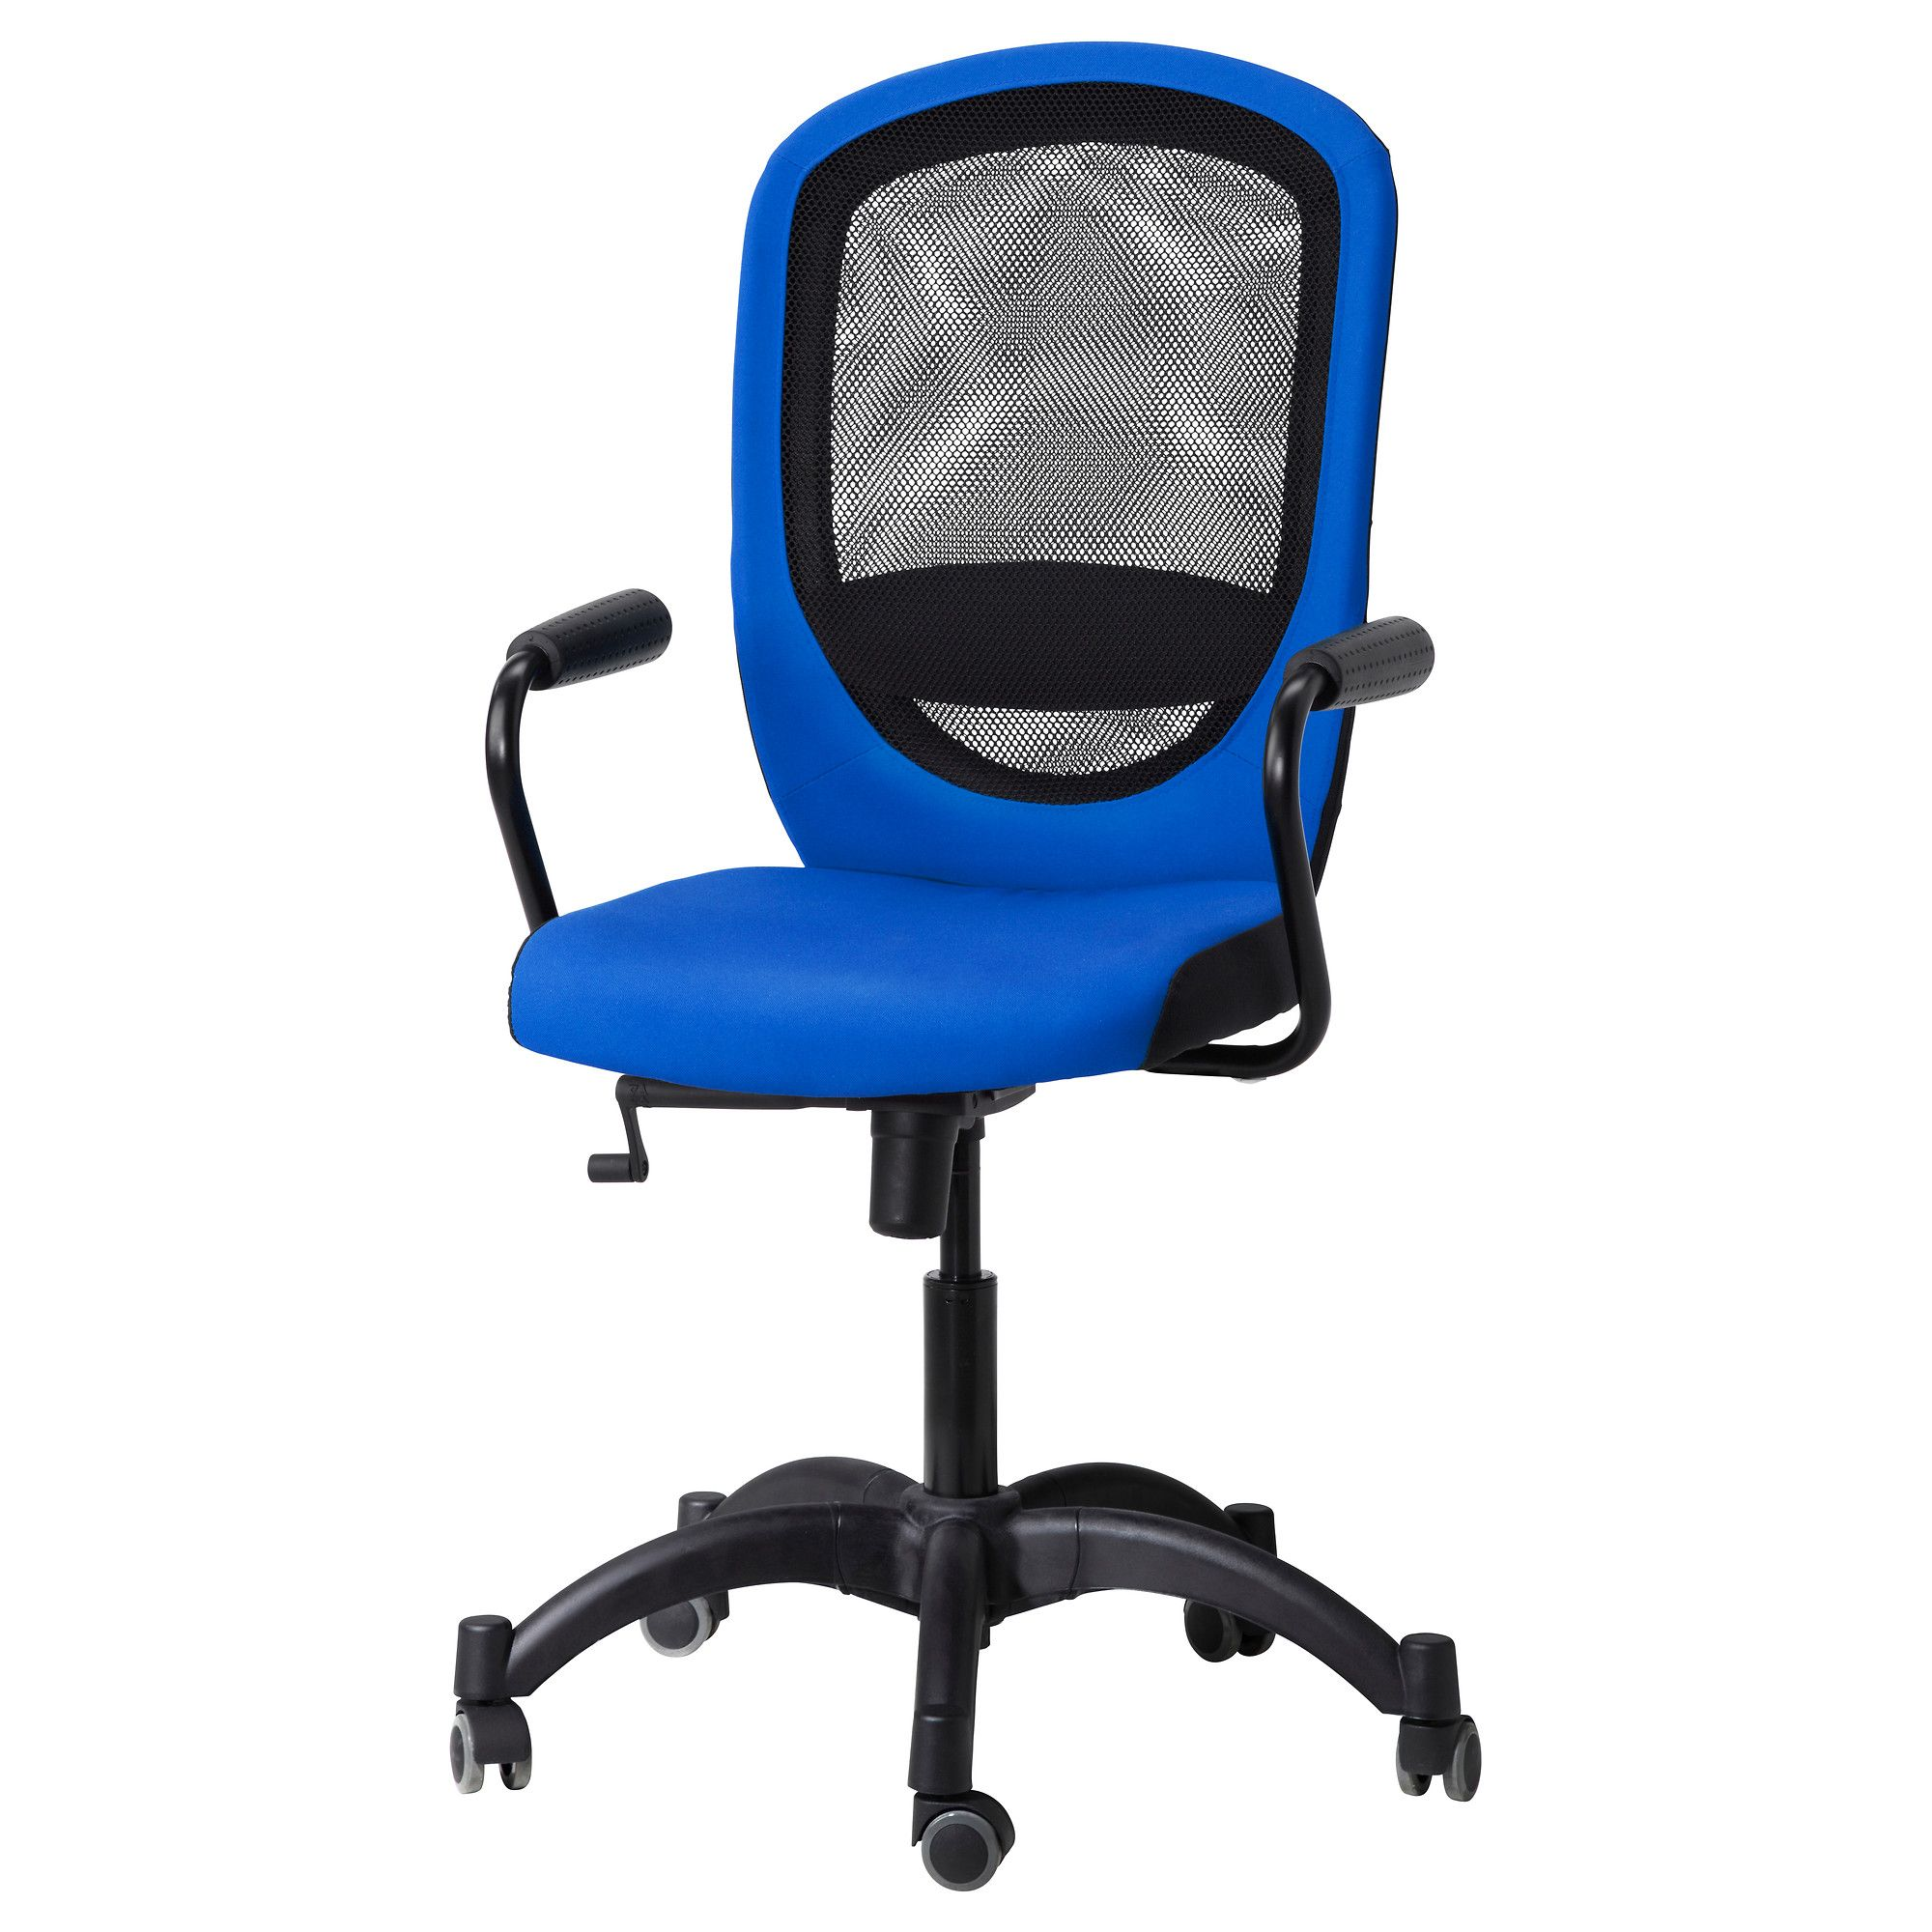 Ikea Us Furniture And Home Furnishings Ikea Office Chair Best Home Office Desk Buy Chair